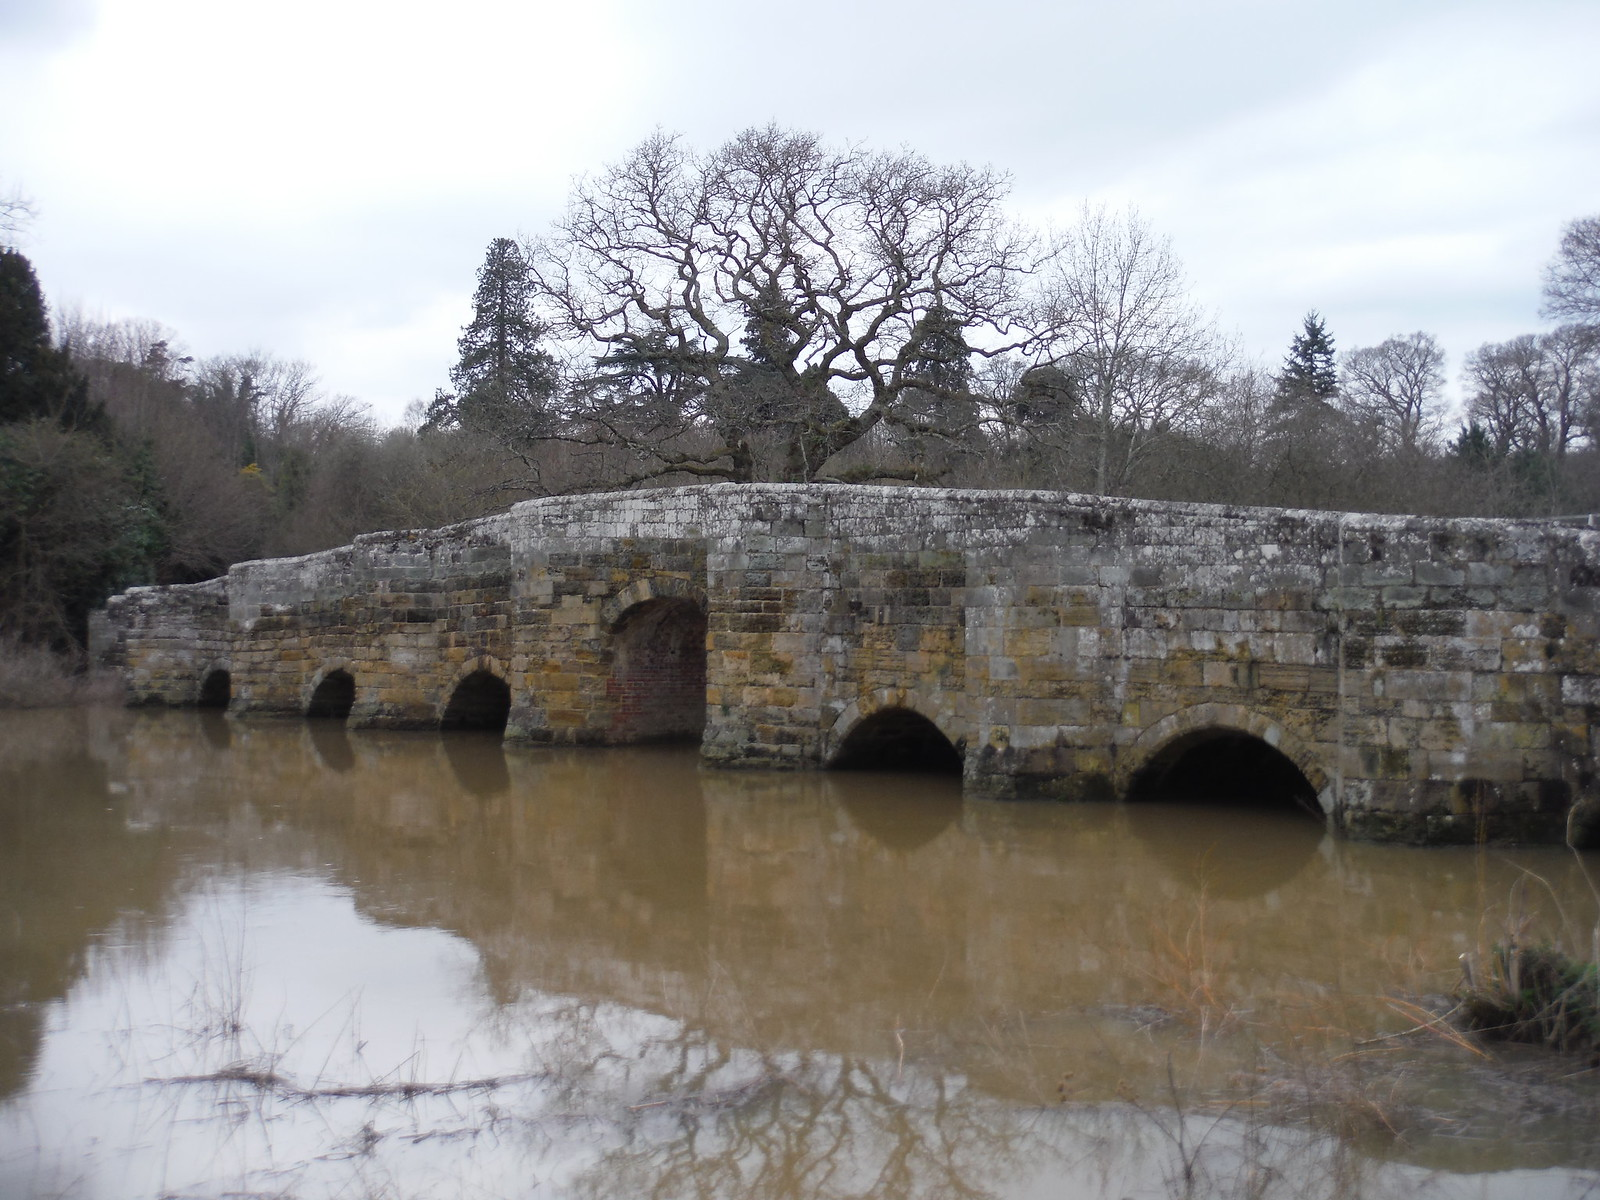 Stopham Bridge SWC Walk 39 - Amberley to Pulborough